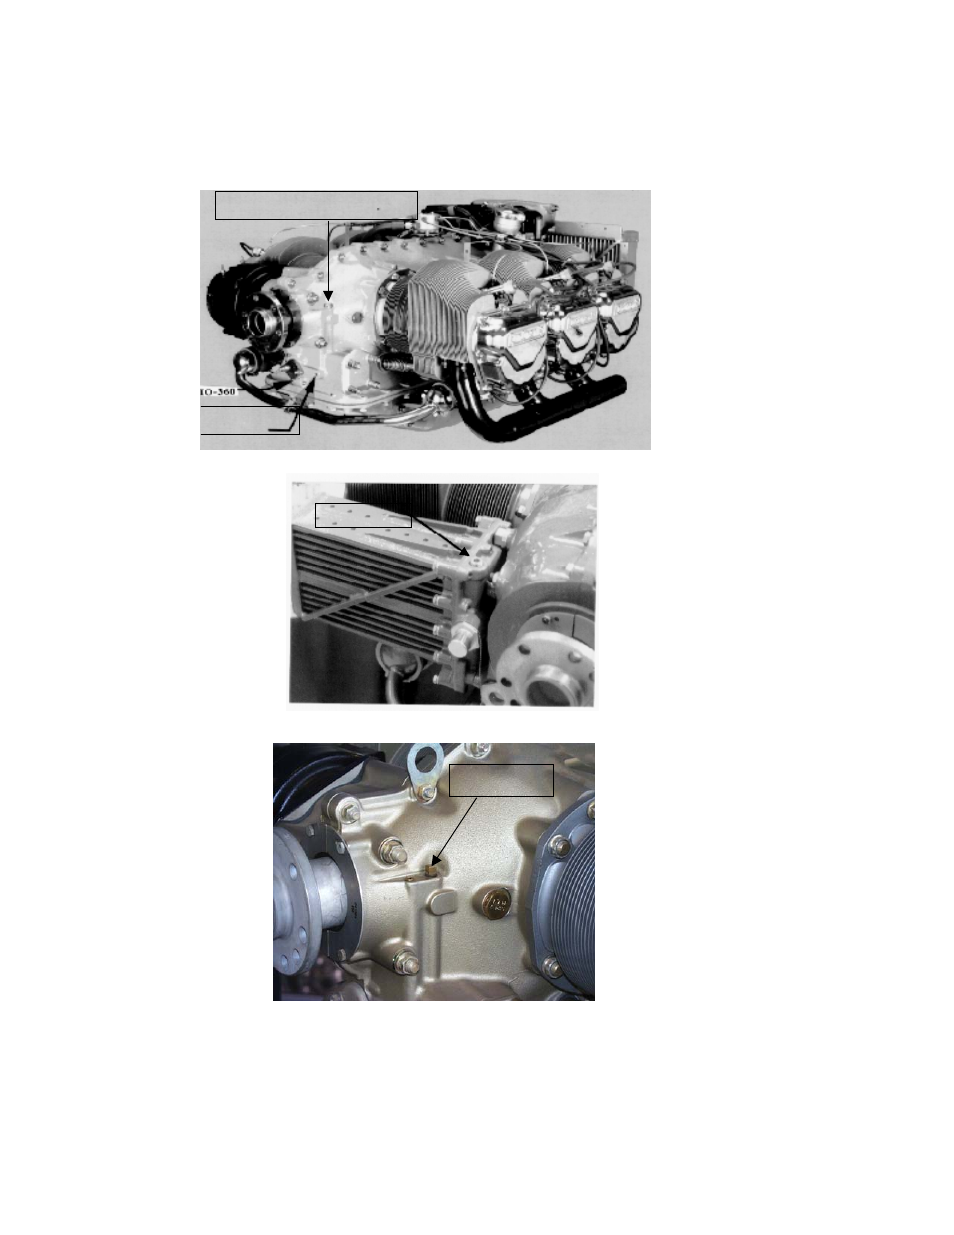 Io-360, Continental engines oil probe location, O-470 | J.P. Instruments  EDM 730 Instrument Installation Manual User Manual | Page 6 / 30